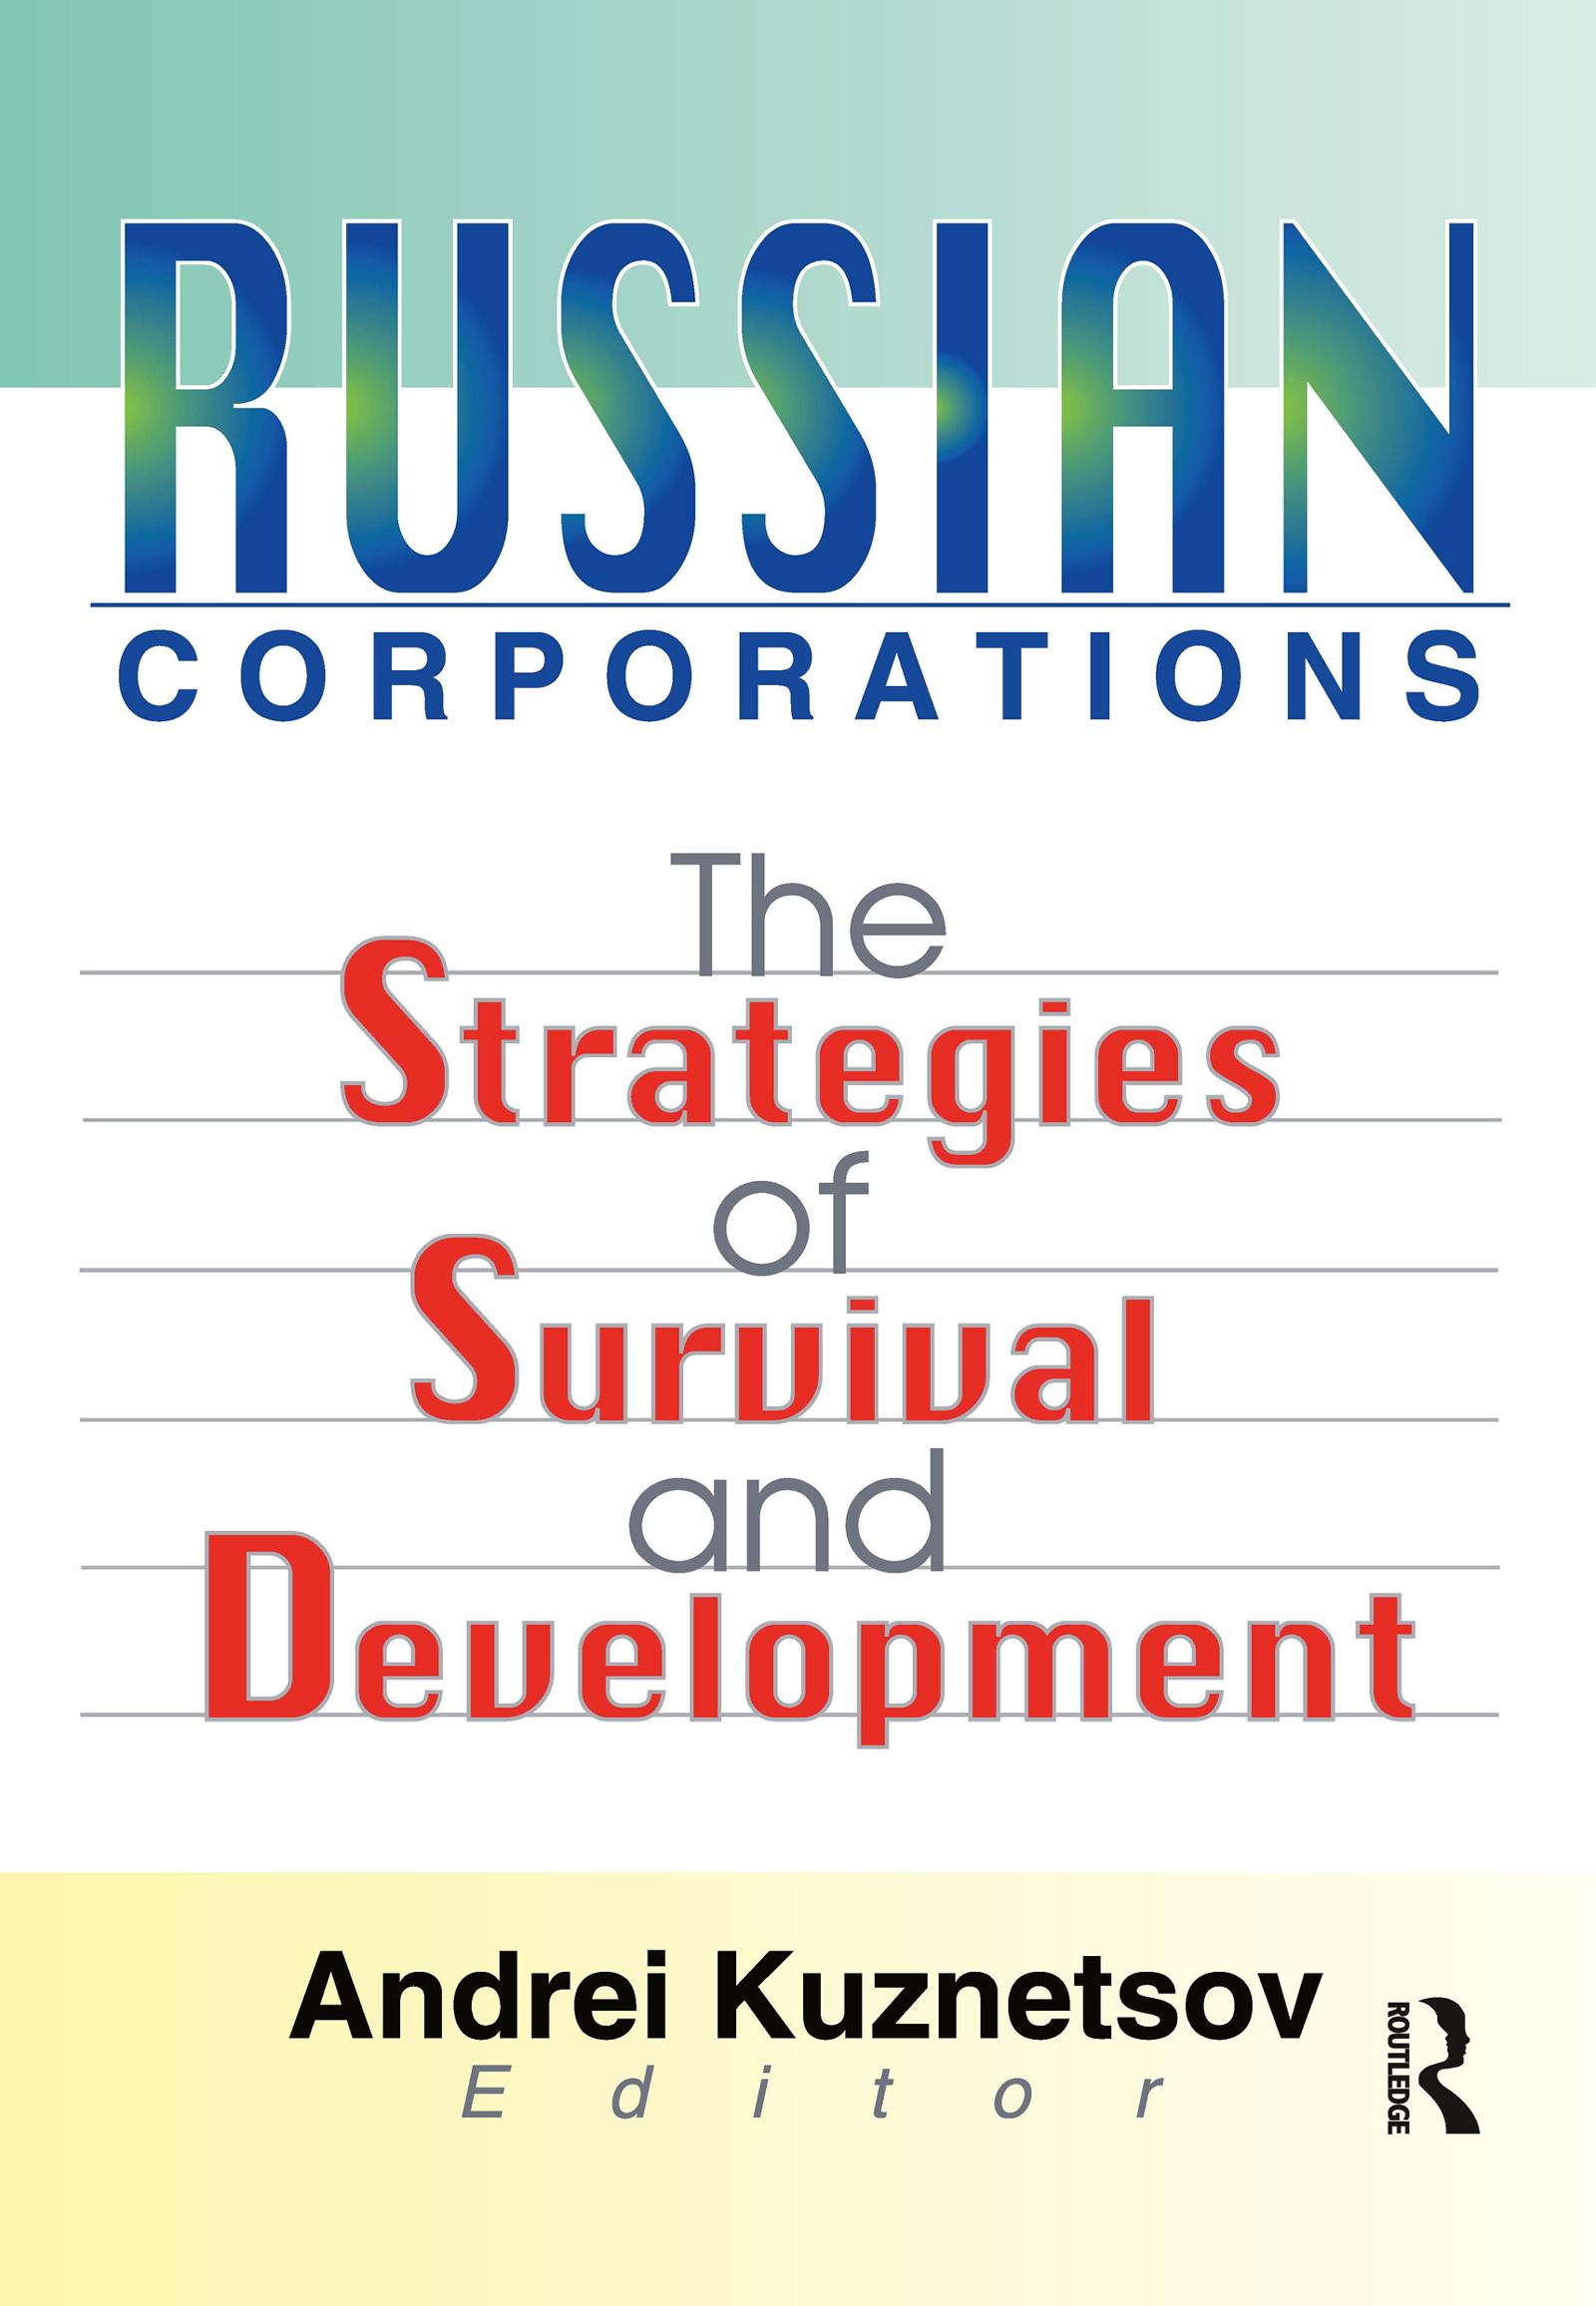 Russian Corporations: The Strategies of Survival and Development (Paperback) book cover